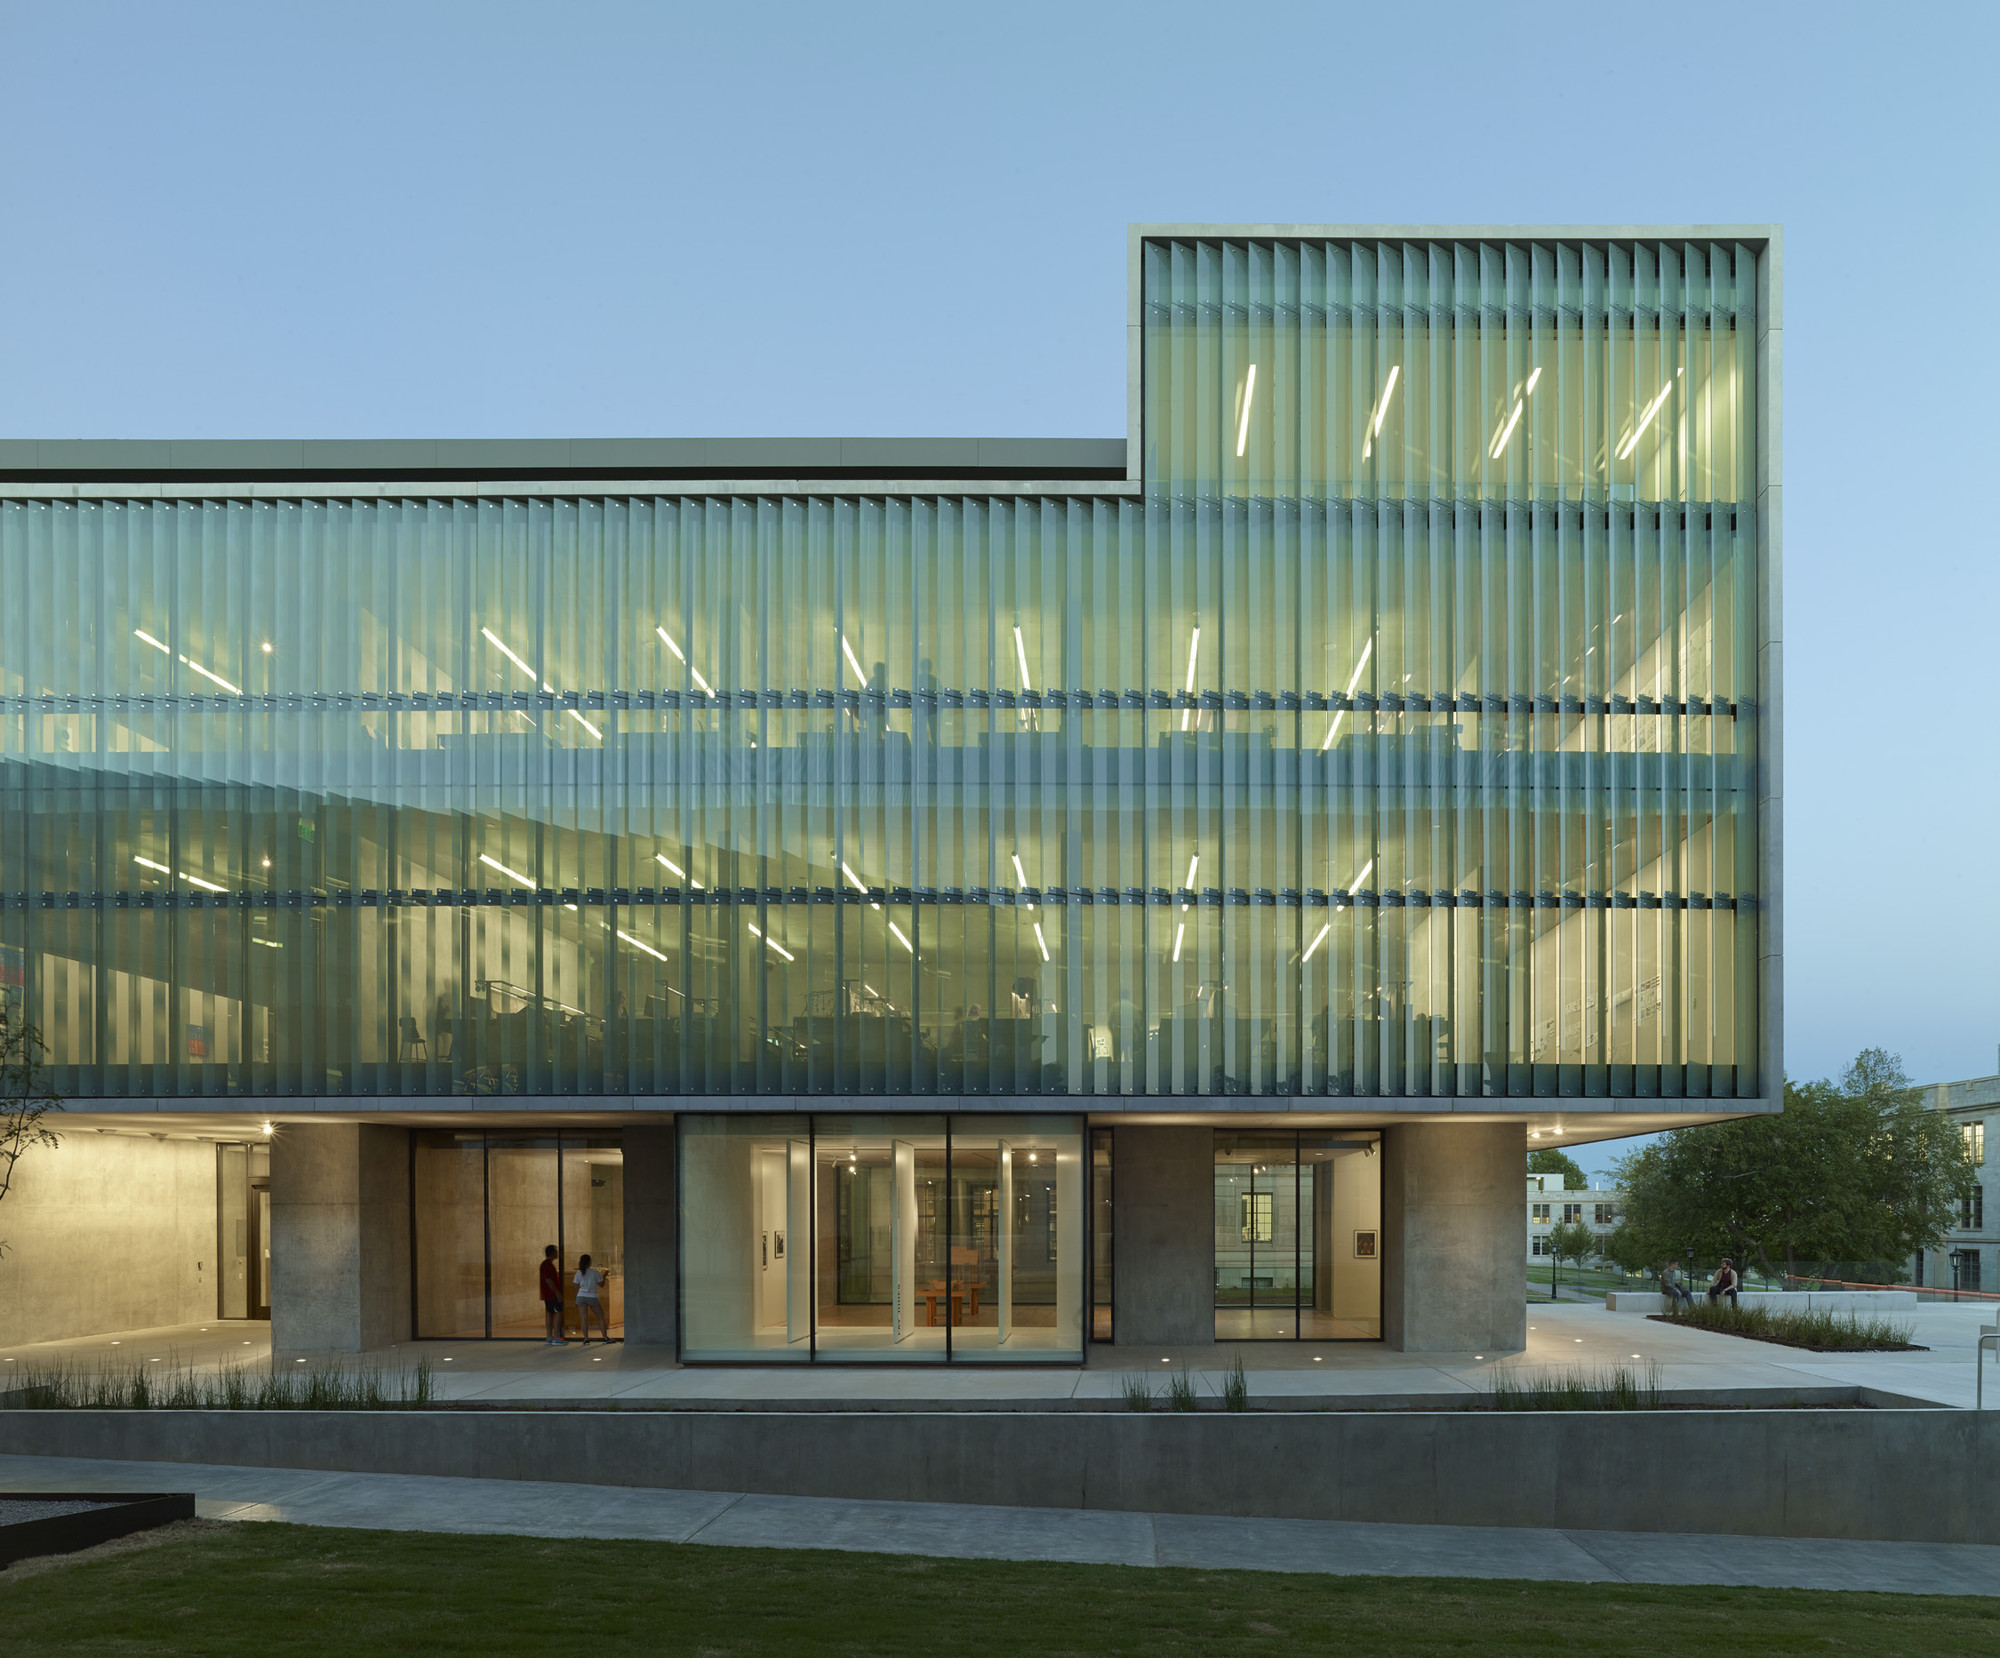 New Front Elevation Glass : Gallery of vol walker hall the steven l anderson design